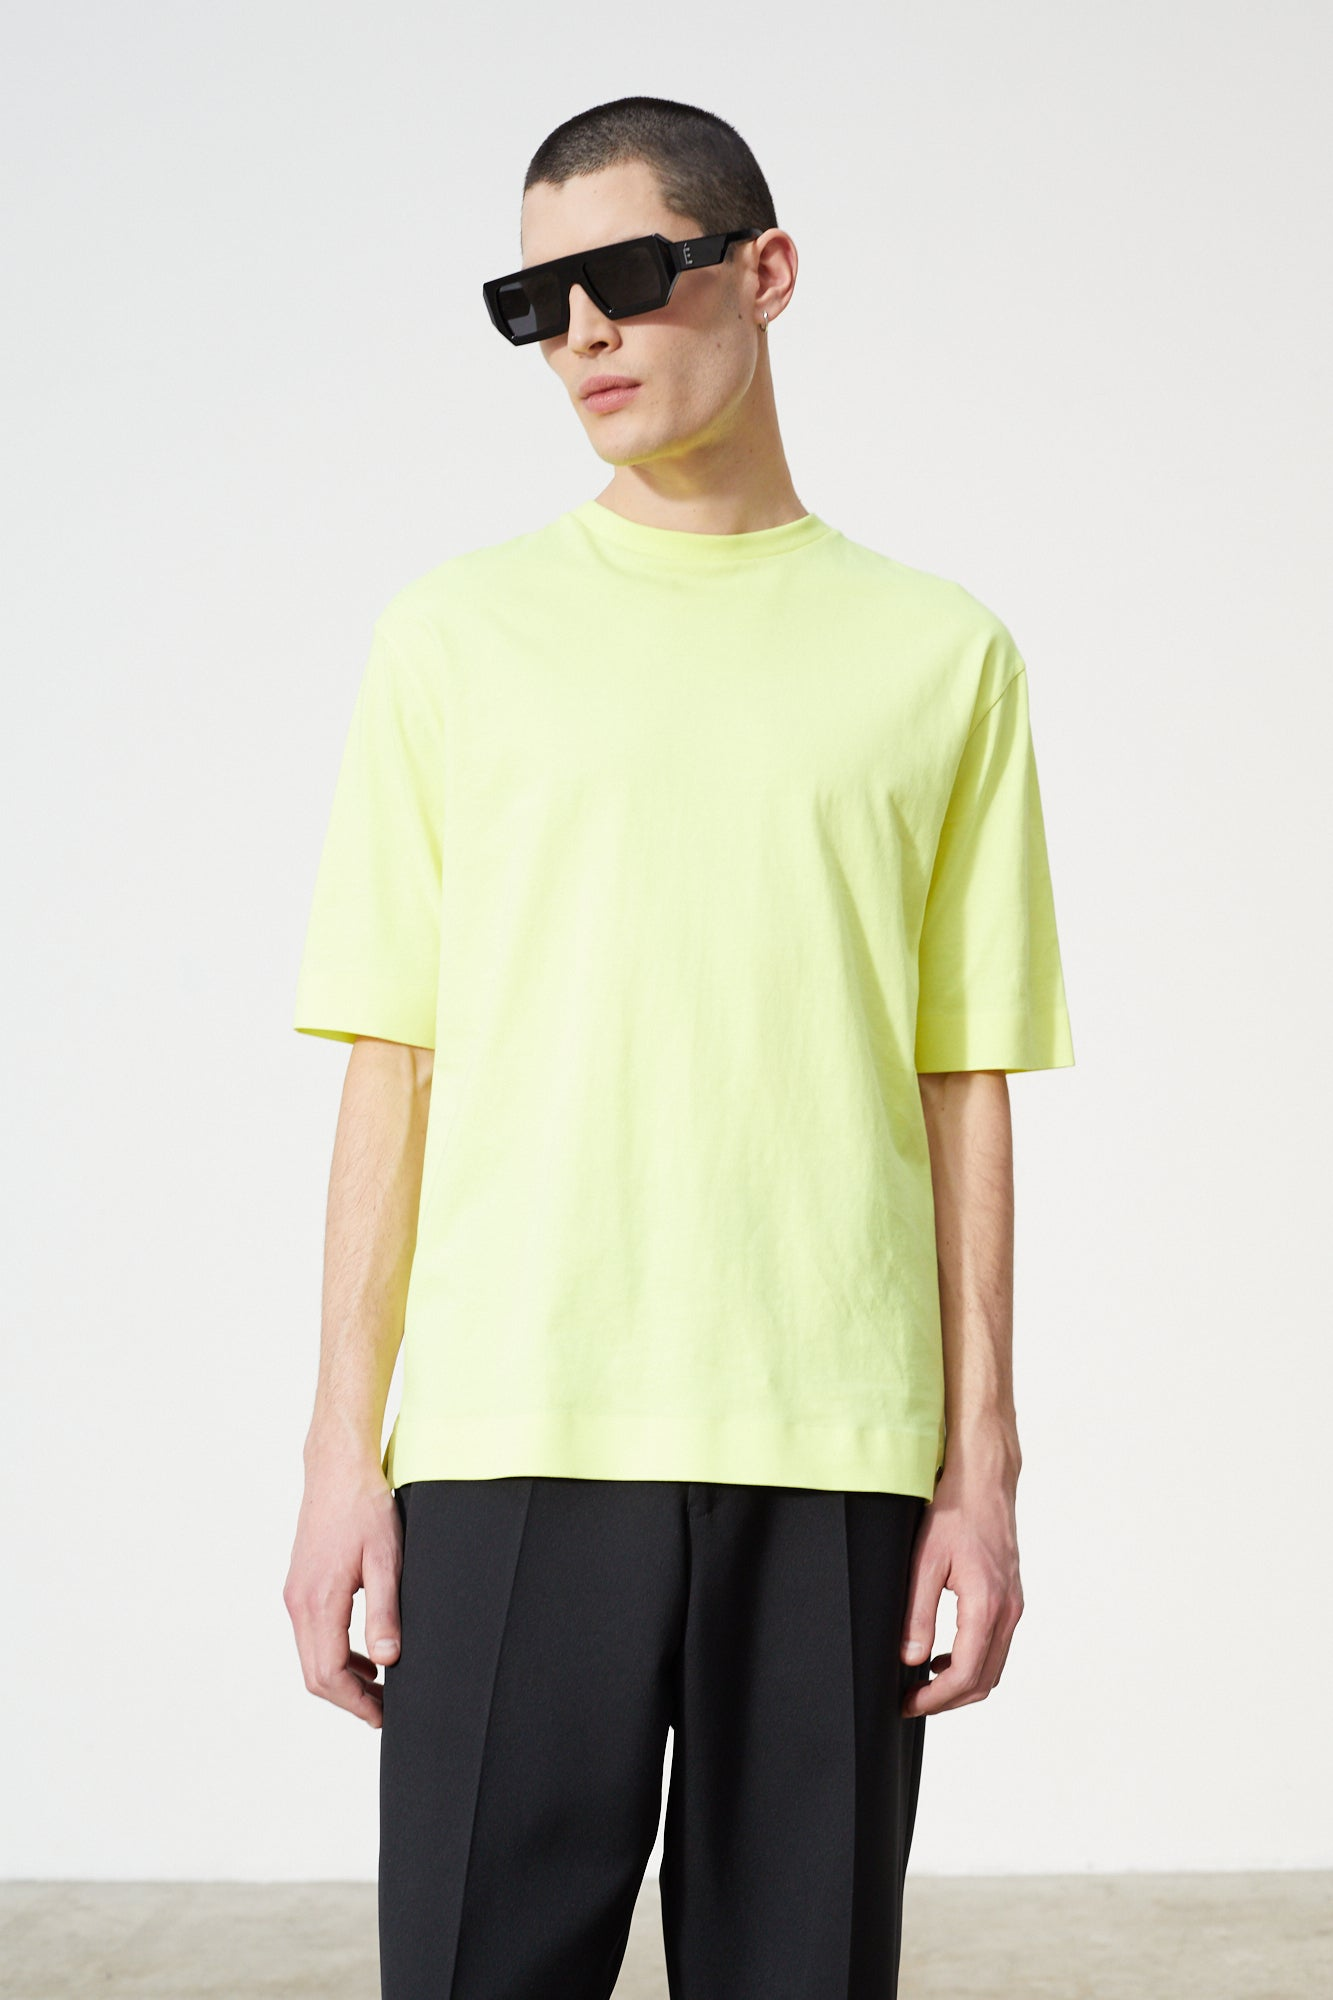 Études Cosmic Neon Yellow T-shirt 3